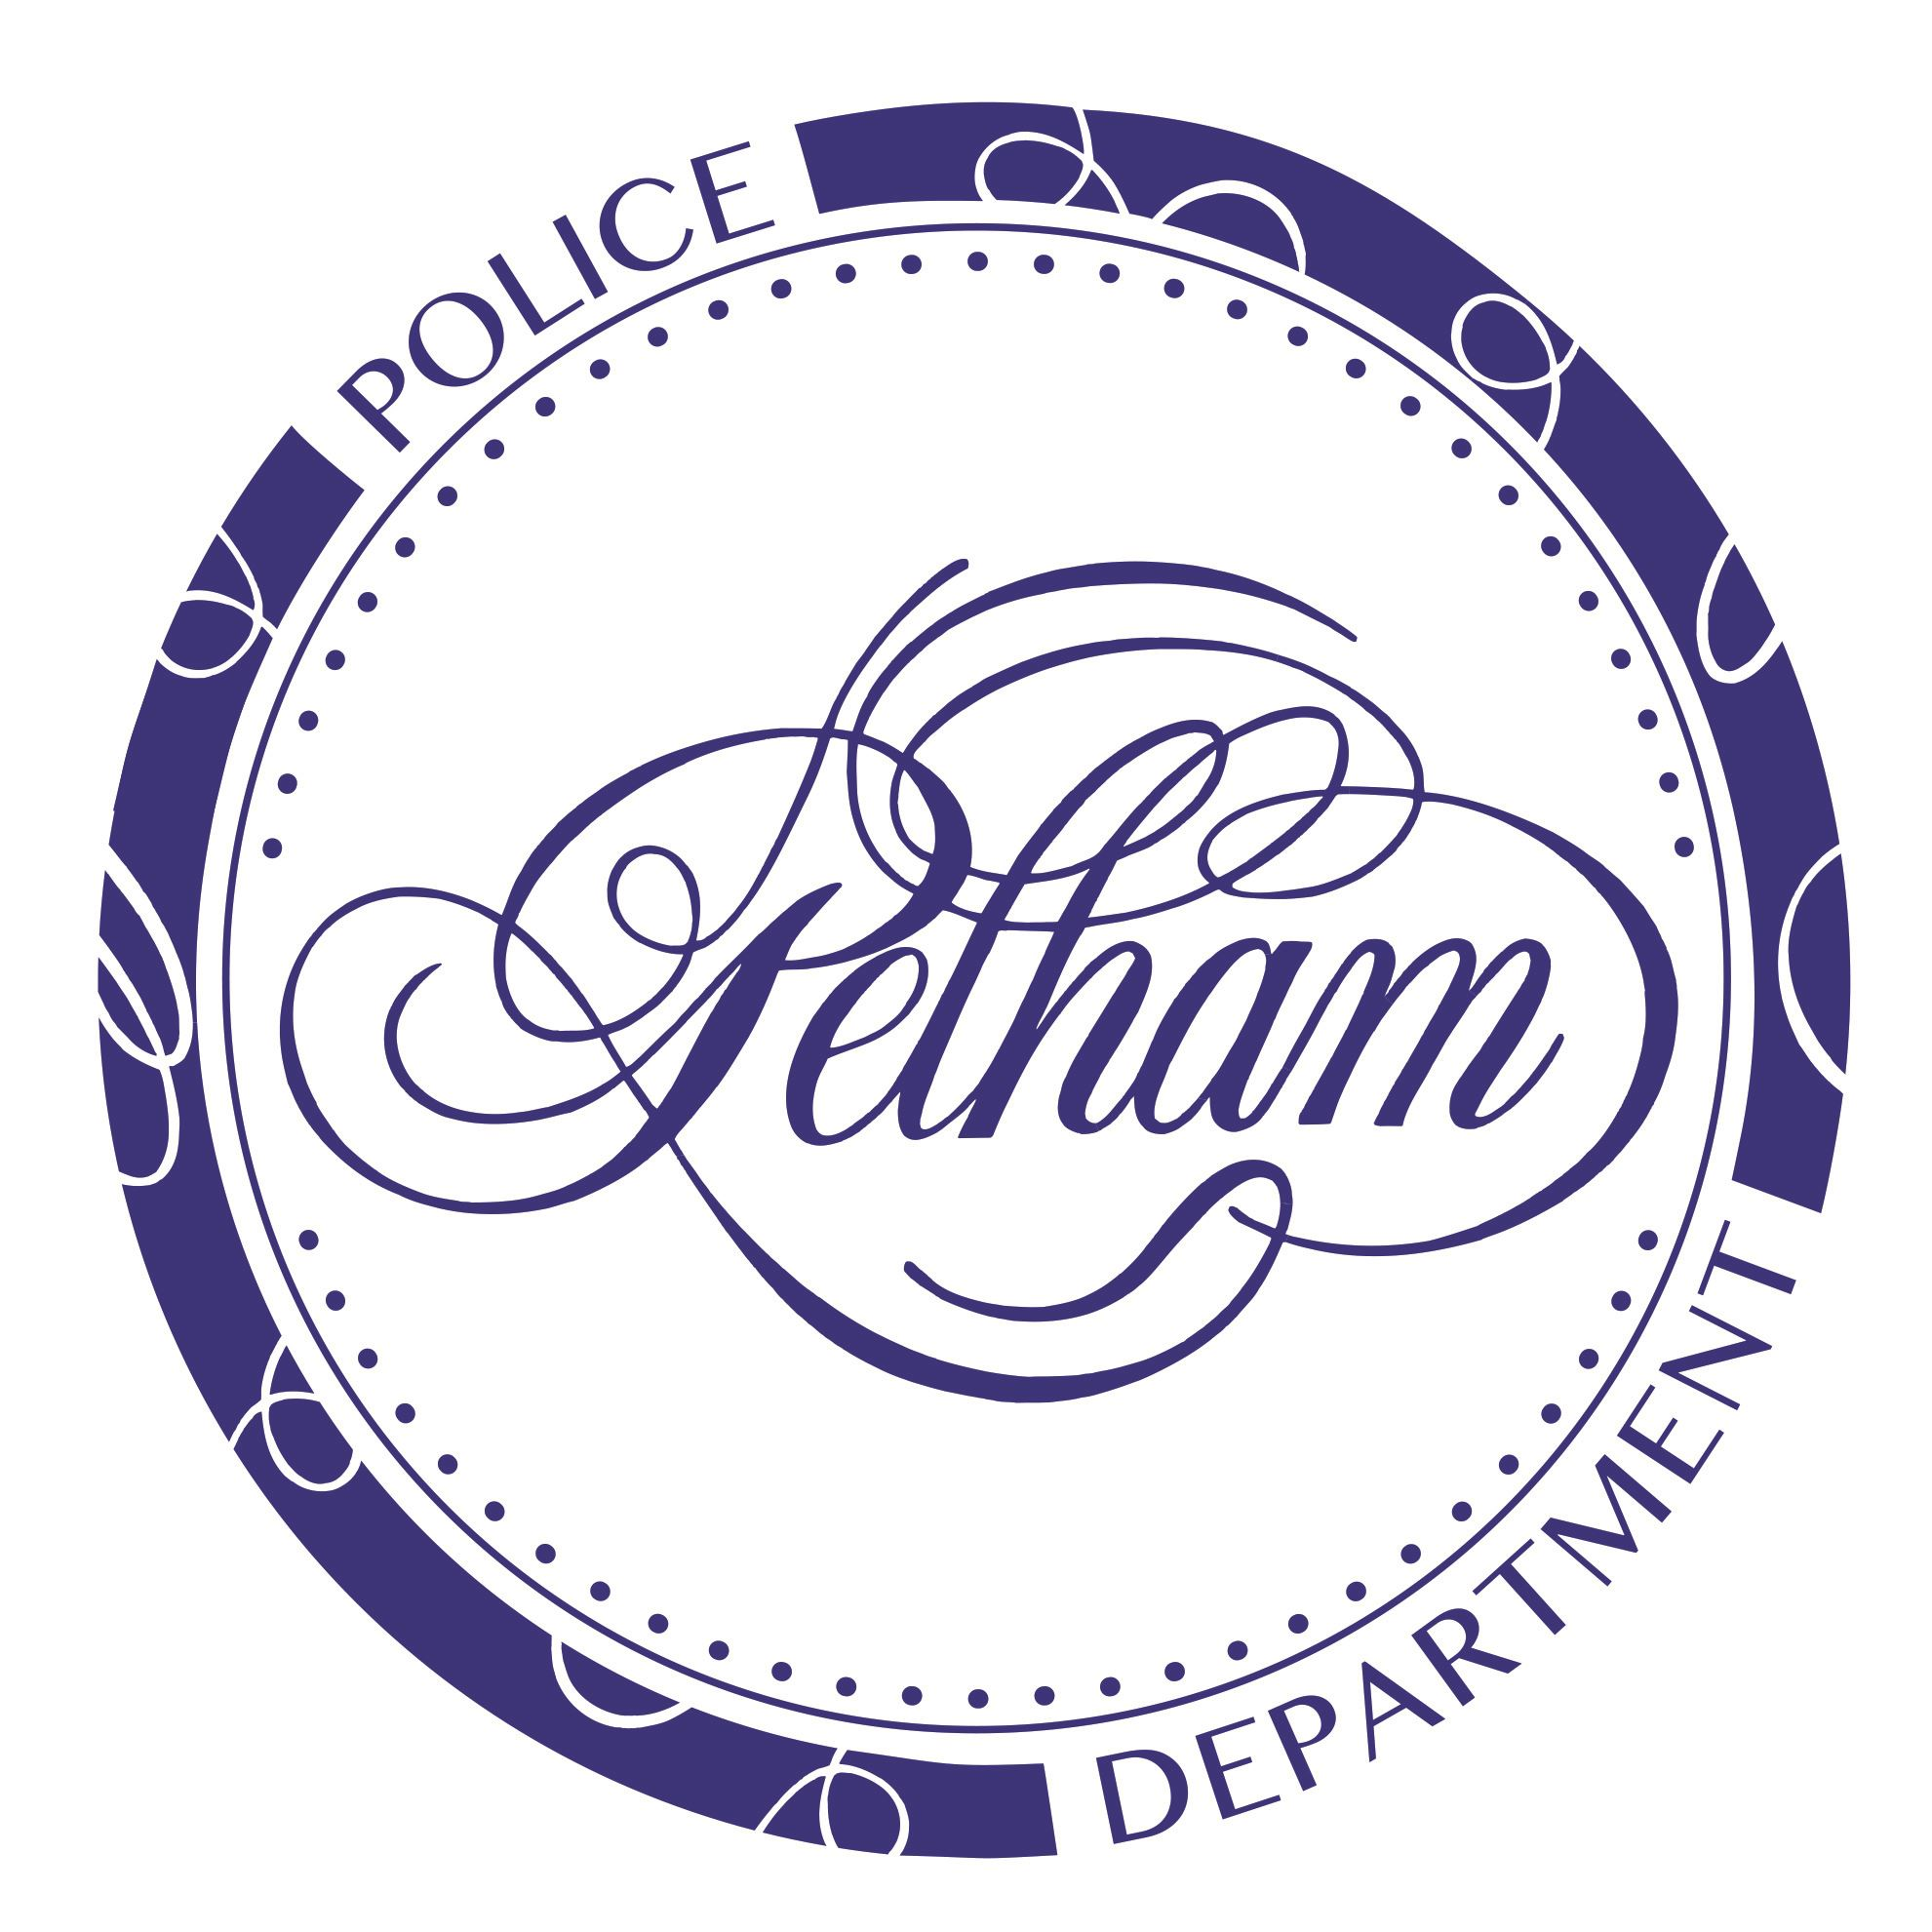 Police Department Pelham logo